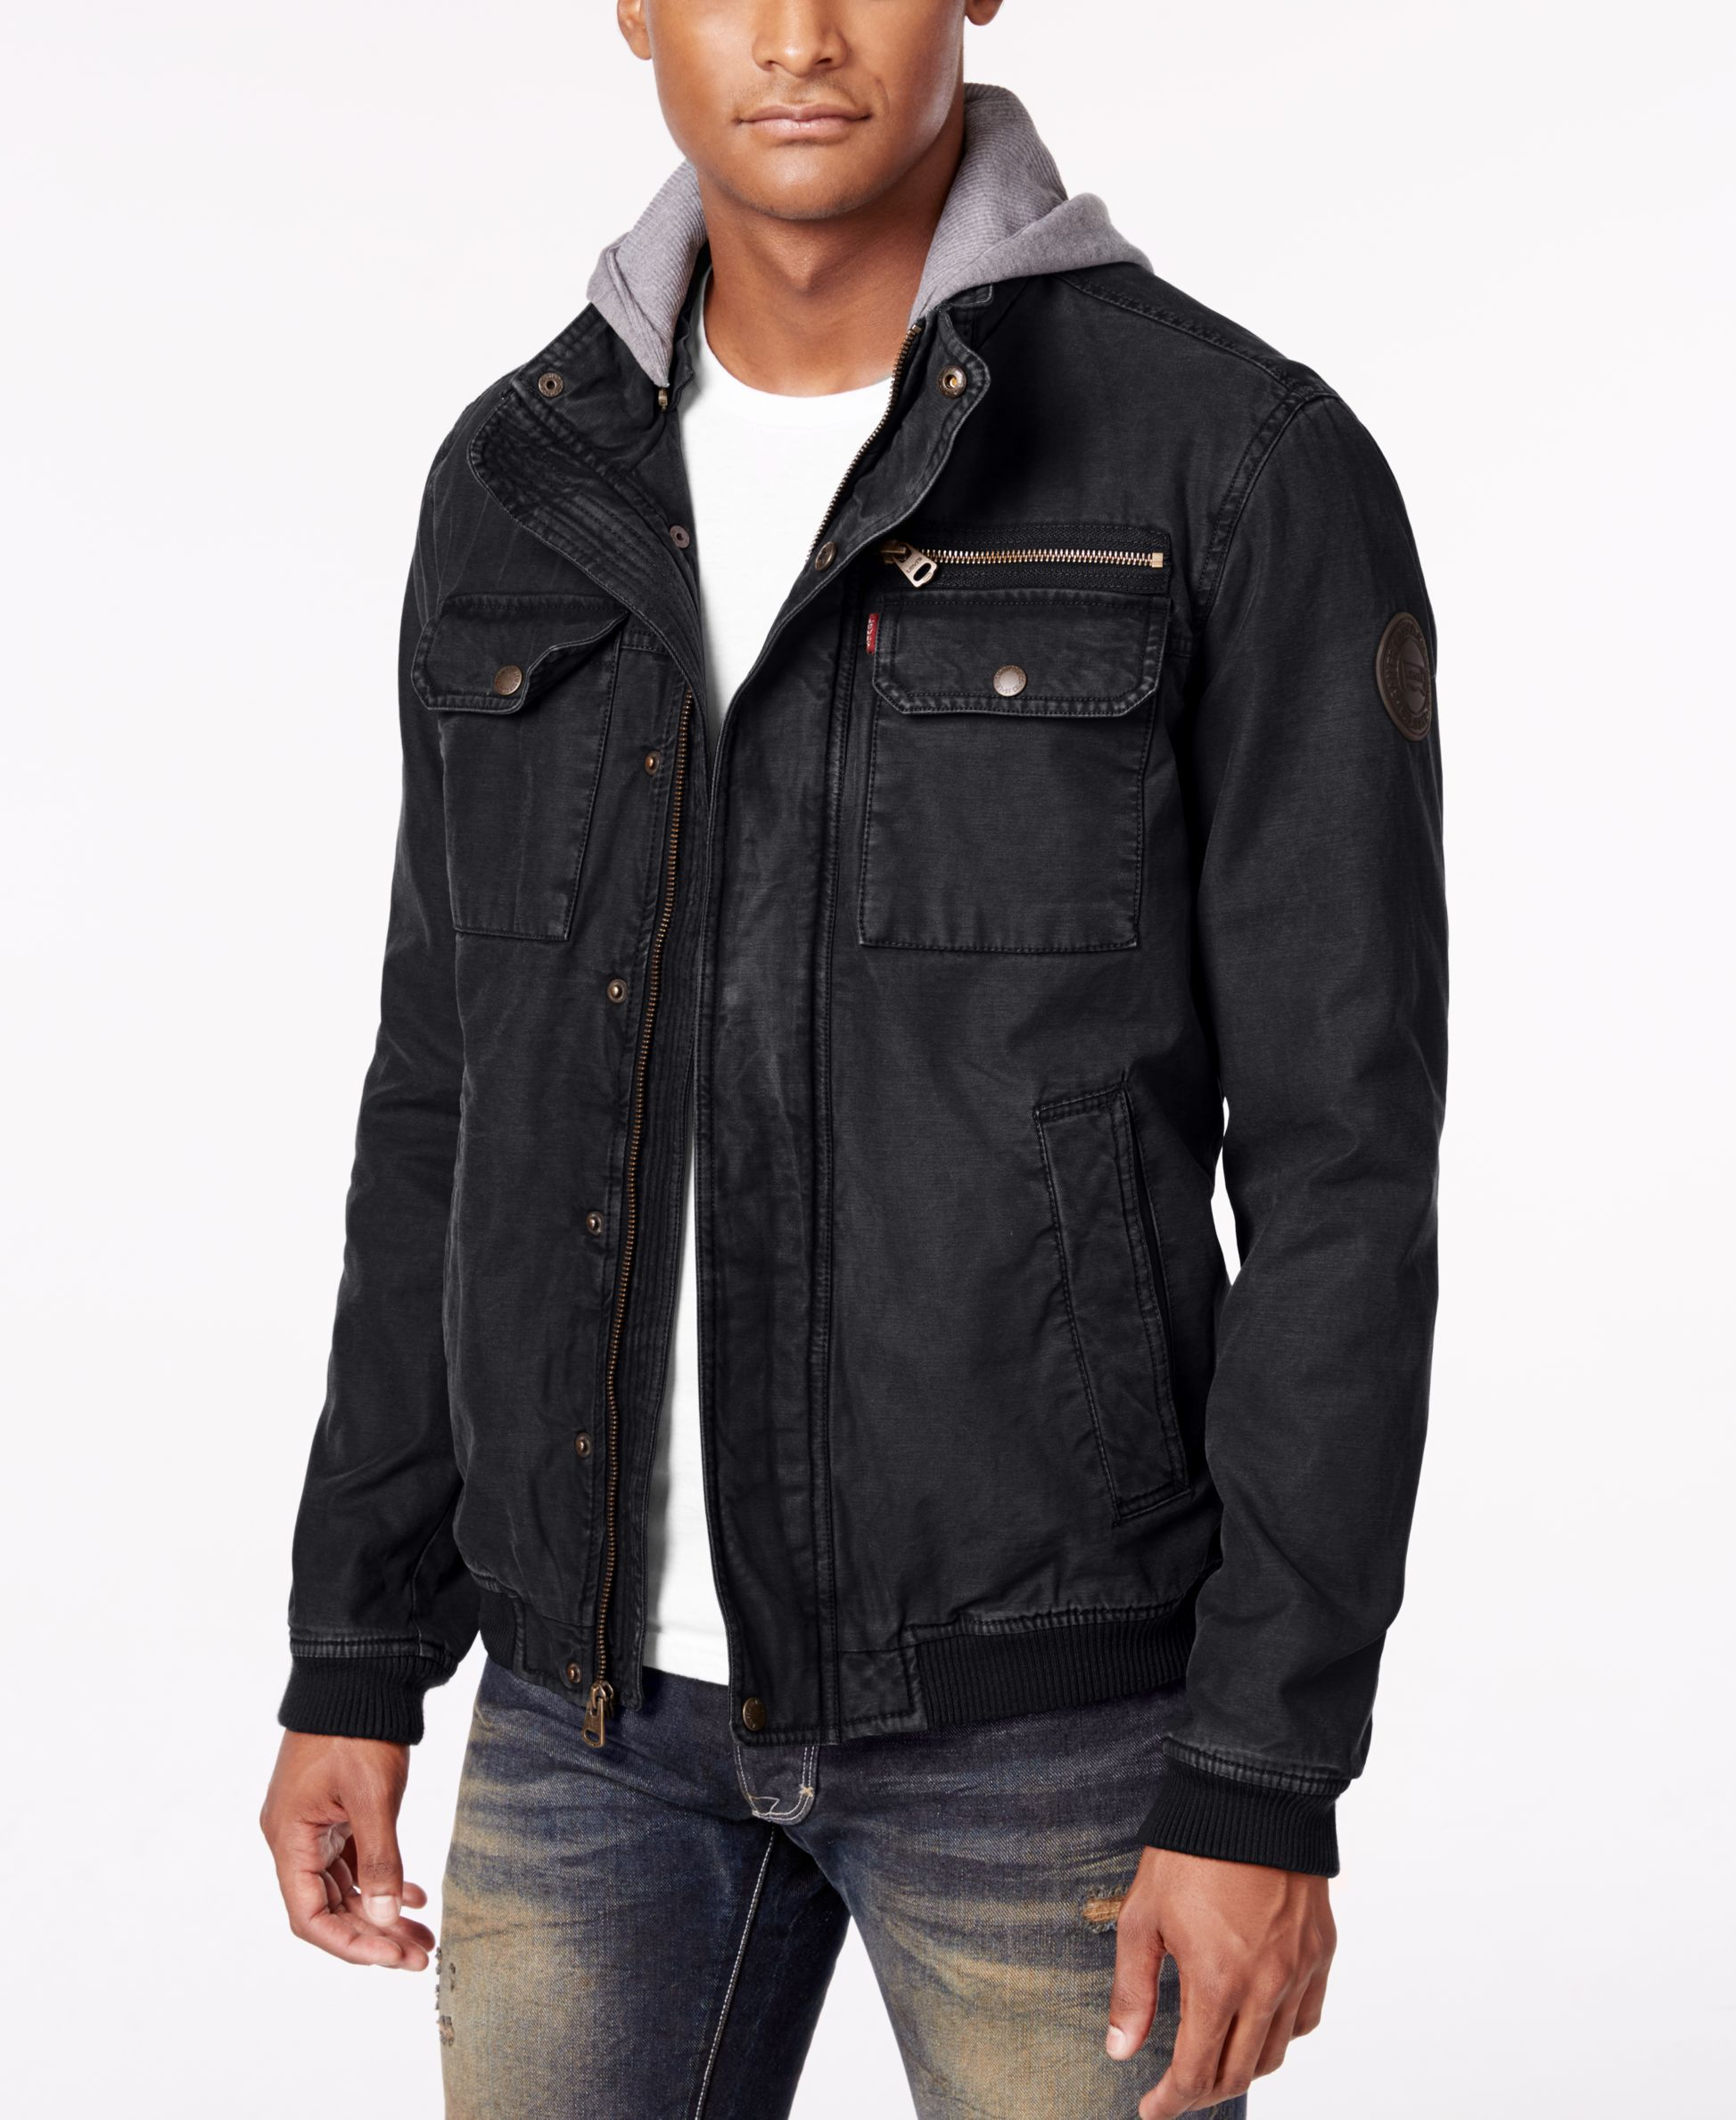 Featuring A Warm Quilted Interior And A Removable Knit Hood This Twill Bomber From Levi S Finishes Hooded Bomber Jacket Jeans Outfit Casual Bomber Jacket Men [ 2378 x 1947 Pixel ]